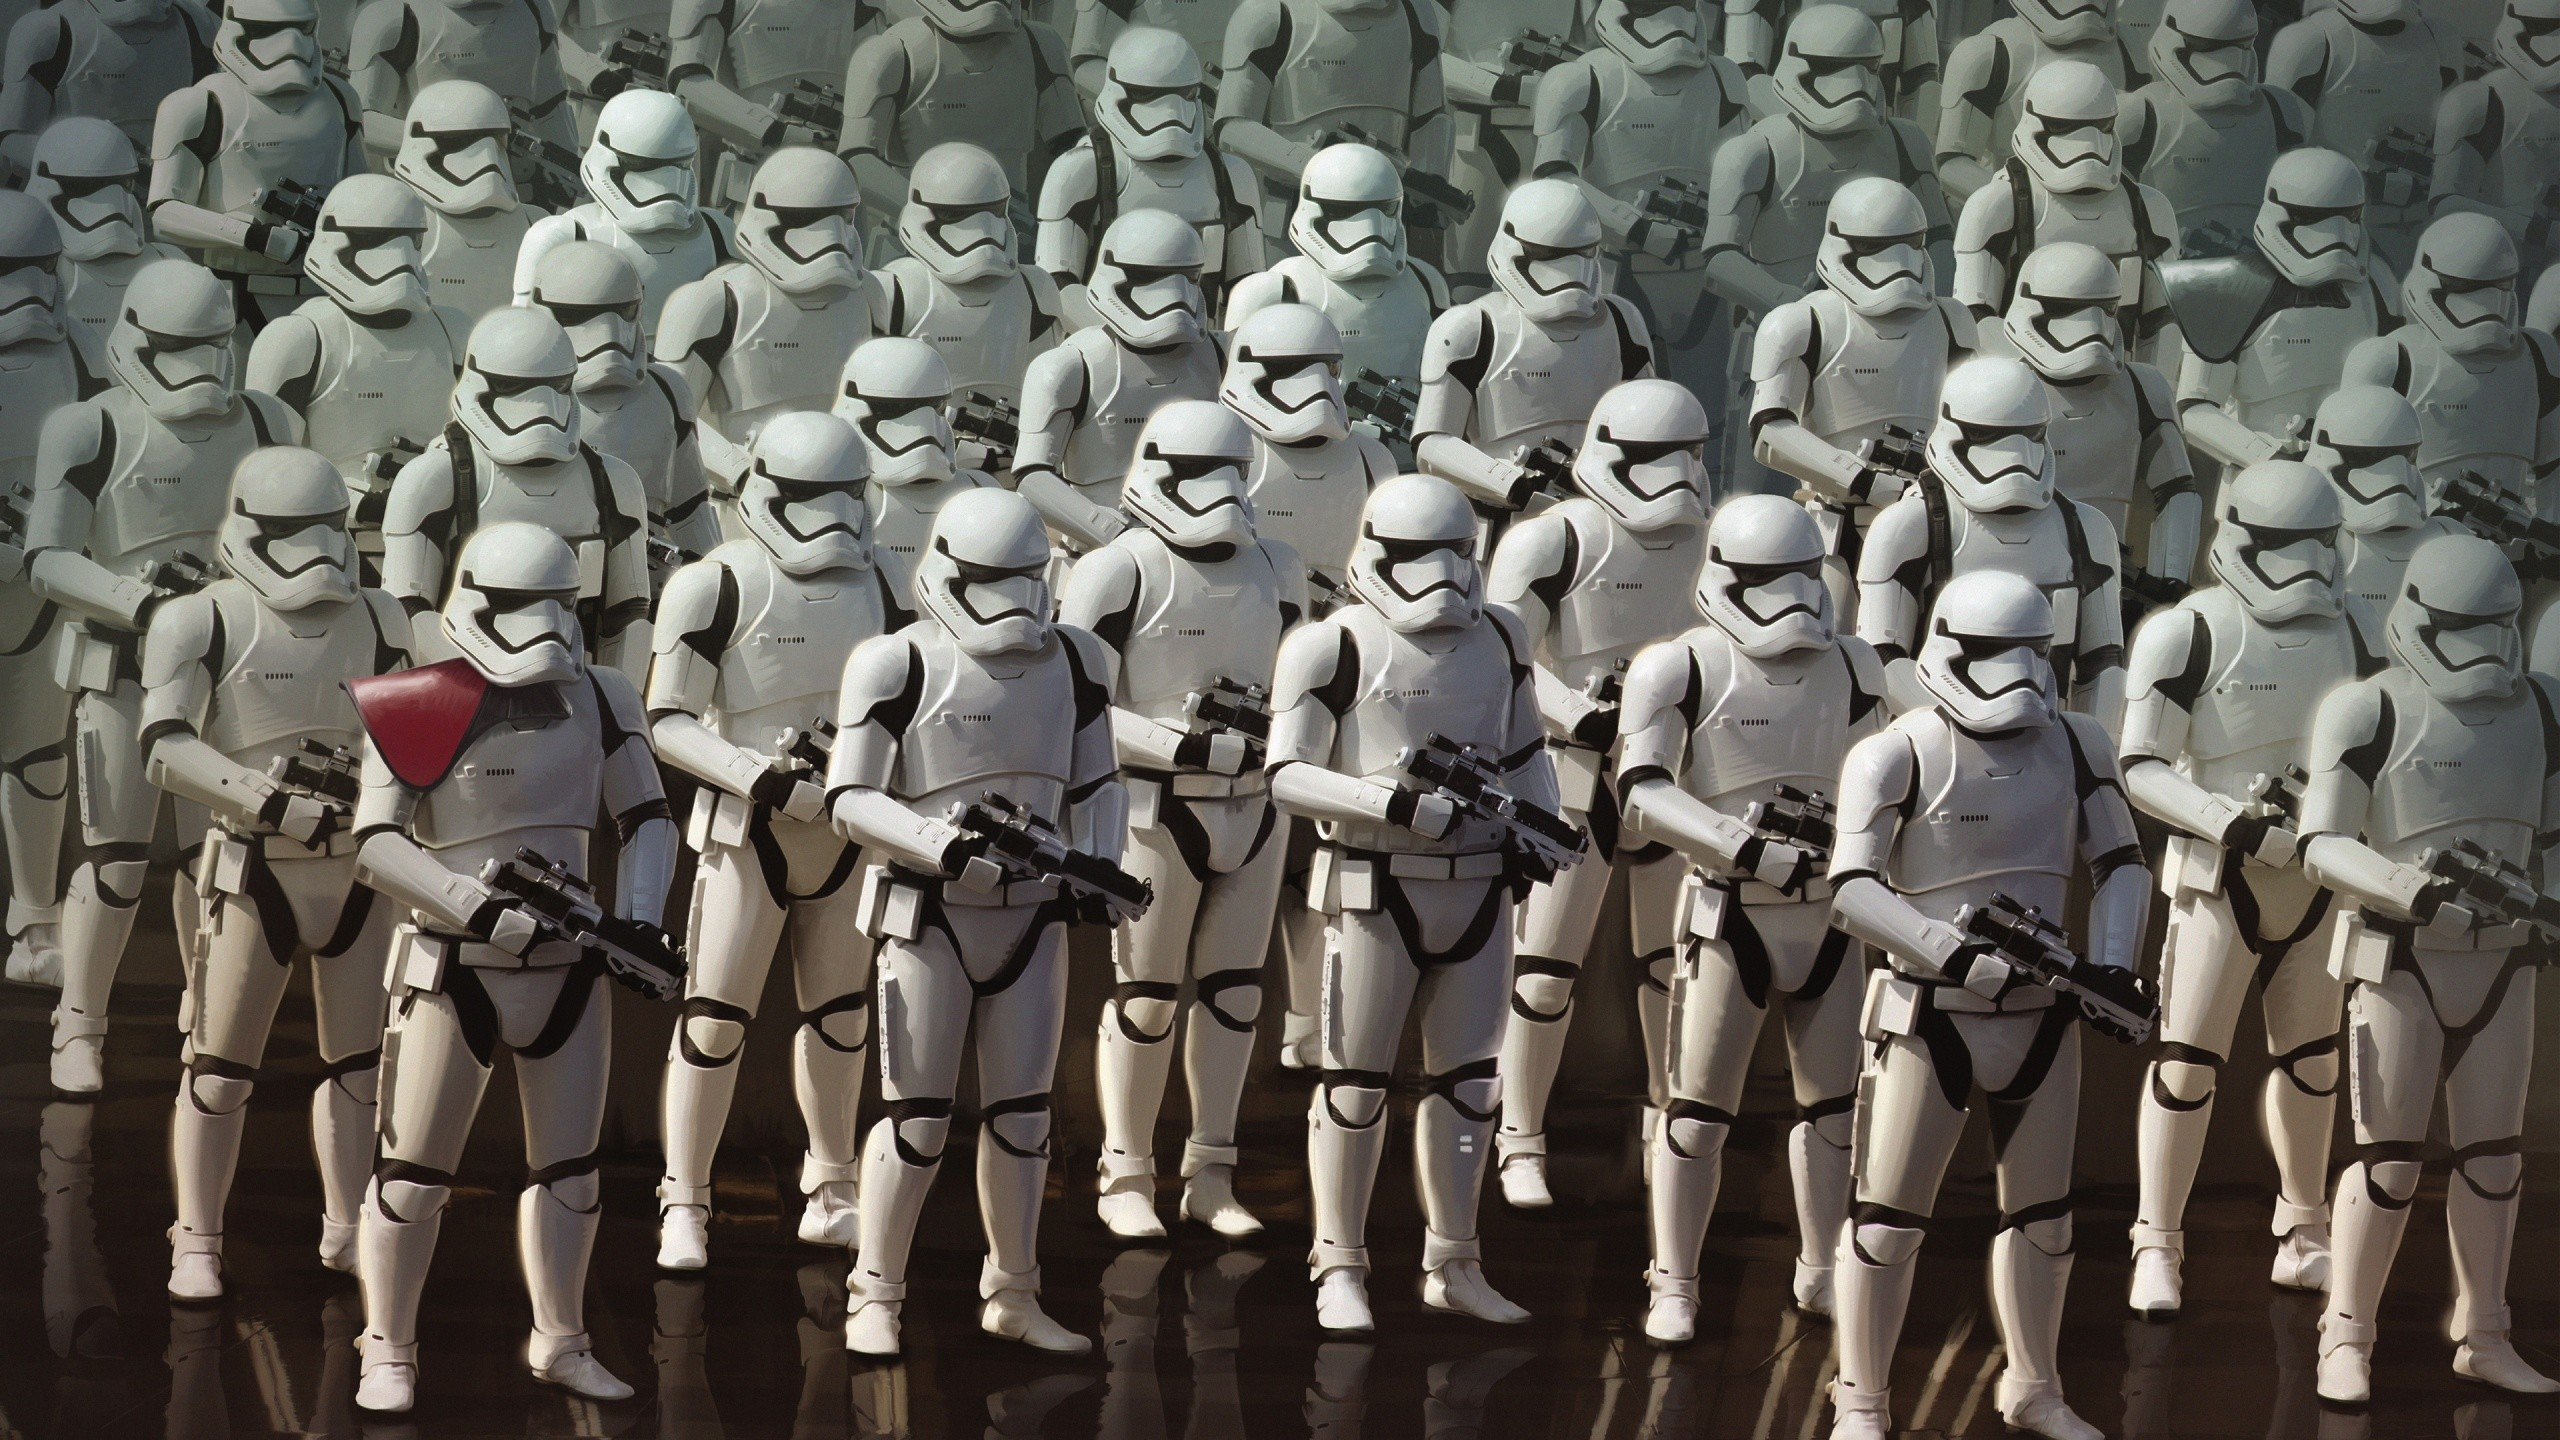 2560x1440 Star Wars The Force Awakens Stormtroopers Wallpapers